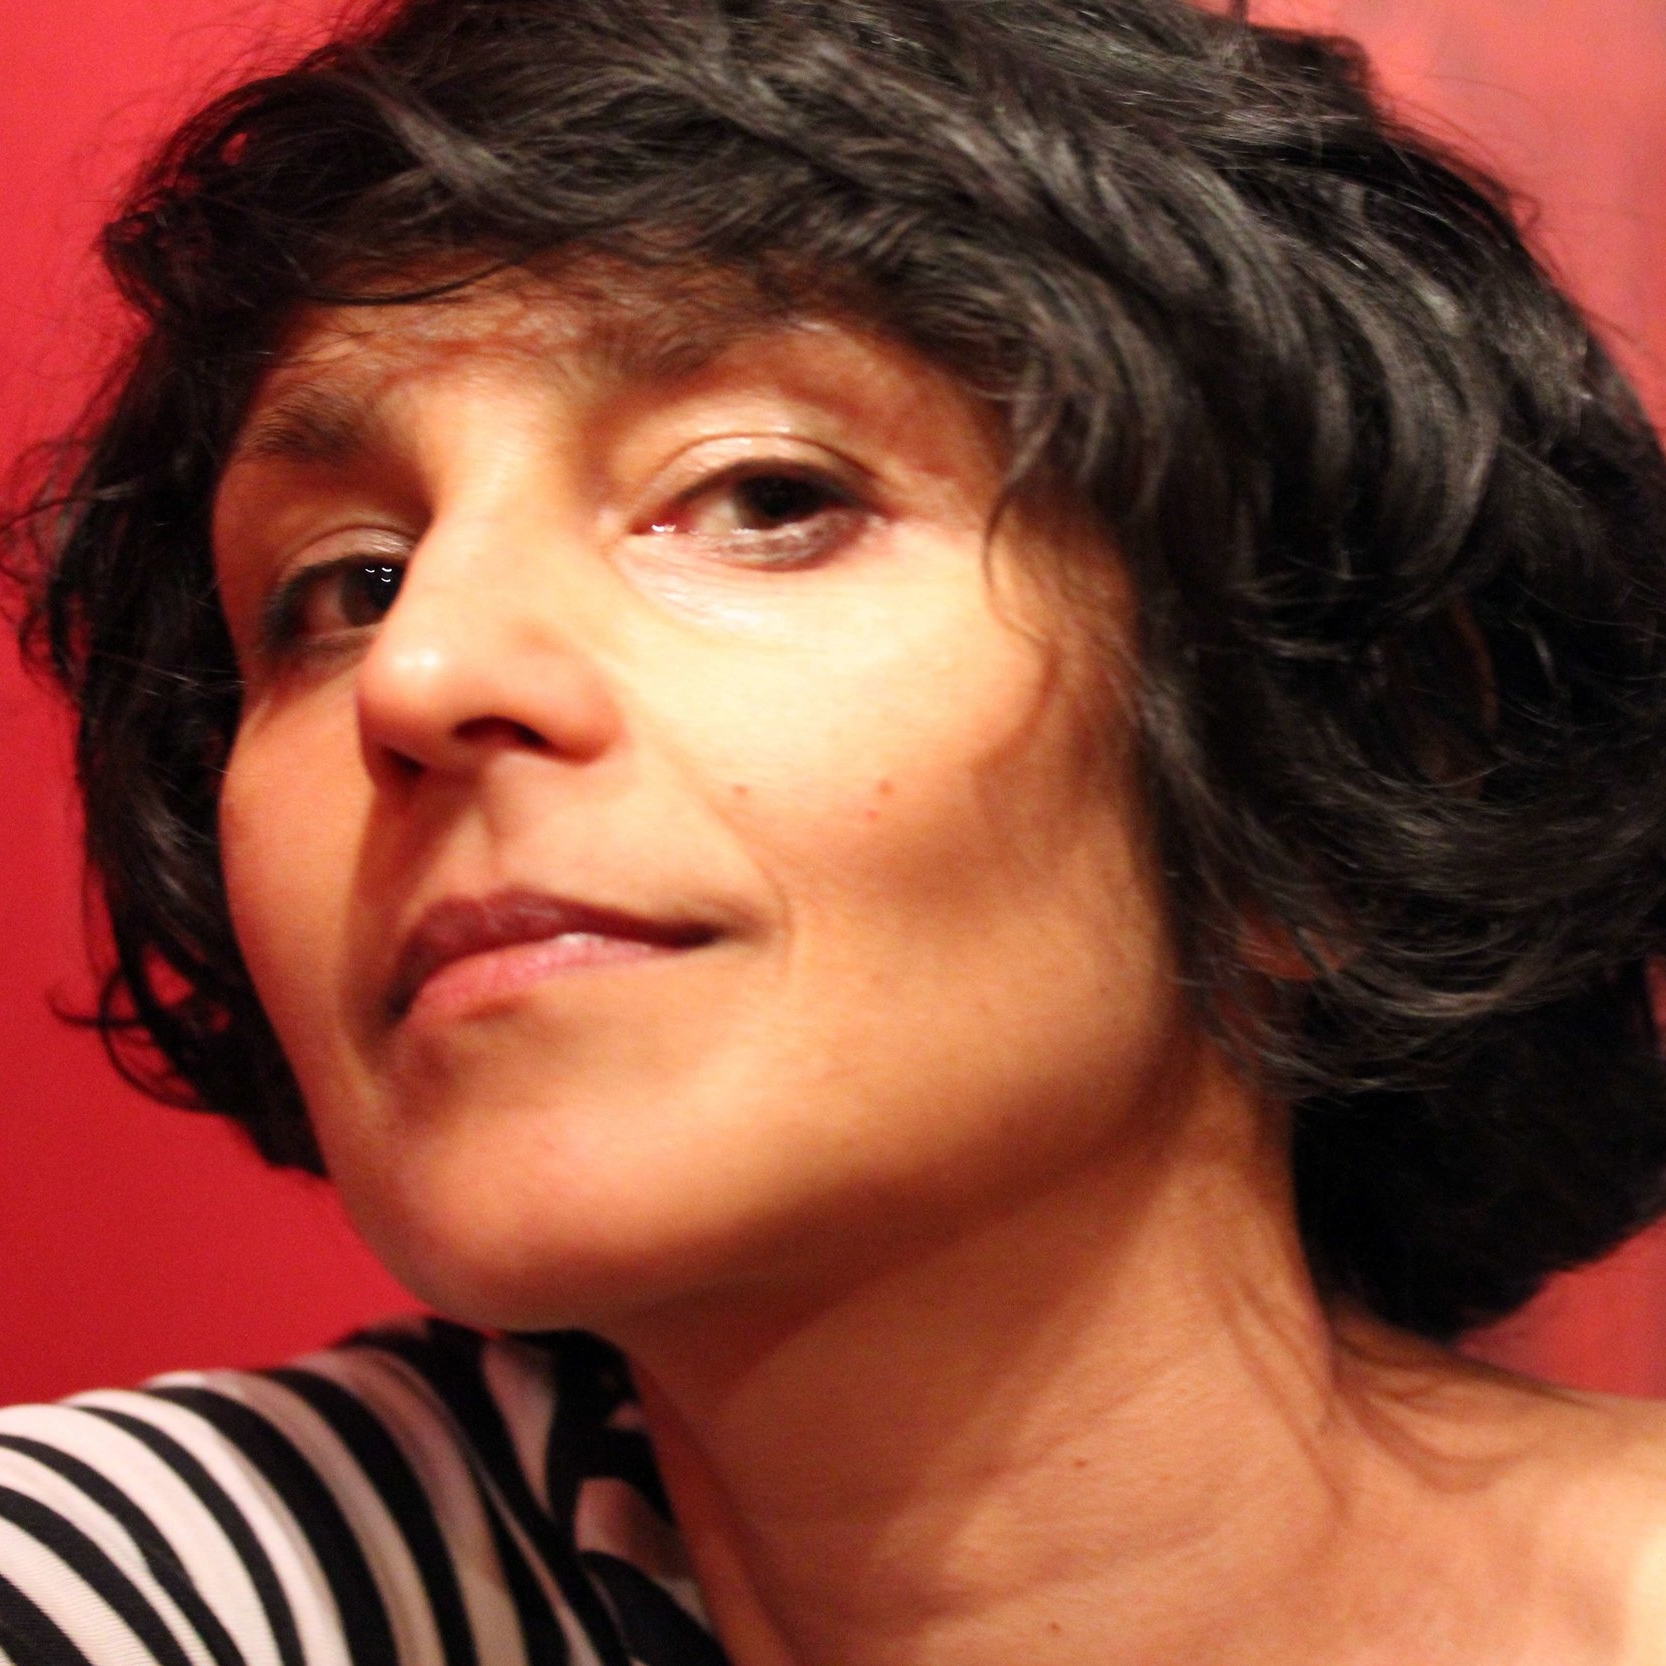 """Eisha Marjara - With a background in photography, Montreal-based Eisha Marjara first drew attention with the witty and satirical THE INCREDIBLE SHRINKING WOMAN. But it was her feature NFB docudrama DESPERATELY SEEKING HELEN (2000) that established her as a groundbreaking filmmaker. The film received the Critic's Choice Award at the Locarno Film Festival and the Jury Prize at the München Dokumentarfilm Festival. It has been described as """"one of the most auspicious film debuts on the Canadian scene."""" Her German-Canadian THE TOURIST (2006) was nominated as best short at the Female Eye Film Festival and her transgender drama HOUSE FOR SALE (2012) received multiple awards at various international film festivals. VENUS is her first fiction feature. Her photo series and essay on the Air India tragedy of flight 182 Remember me Nought was featured in Descant magazine. Marjara has also authored her debut novel Faerie, (Arsenal Pulp Press) about a teenager struggling with anorexia. Faerie has received rave reviews in Canadian and American press. Marjara has recently been selected for the 2017 TIFF Studio. She is developing her second feature CALORIE with Compass Productions. CALORIE was also selected for the 2016 Goa Film Bazaar coproduction market and for the Praxis Screenwriters Lab where Marjara was mentored by screenwriter Guinevere Turner (American Psycho, The Notorious Bettie Page)."""